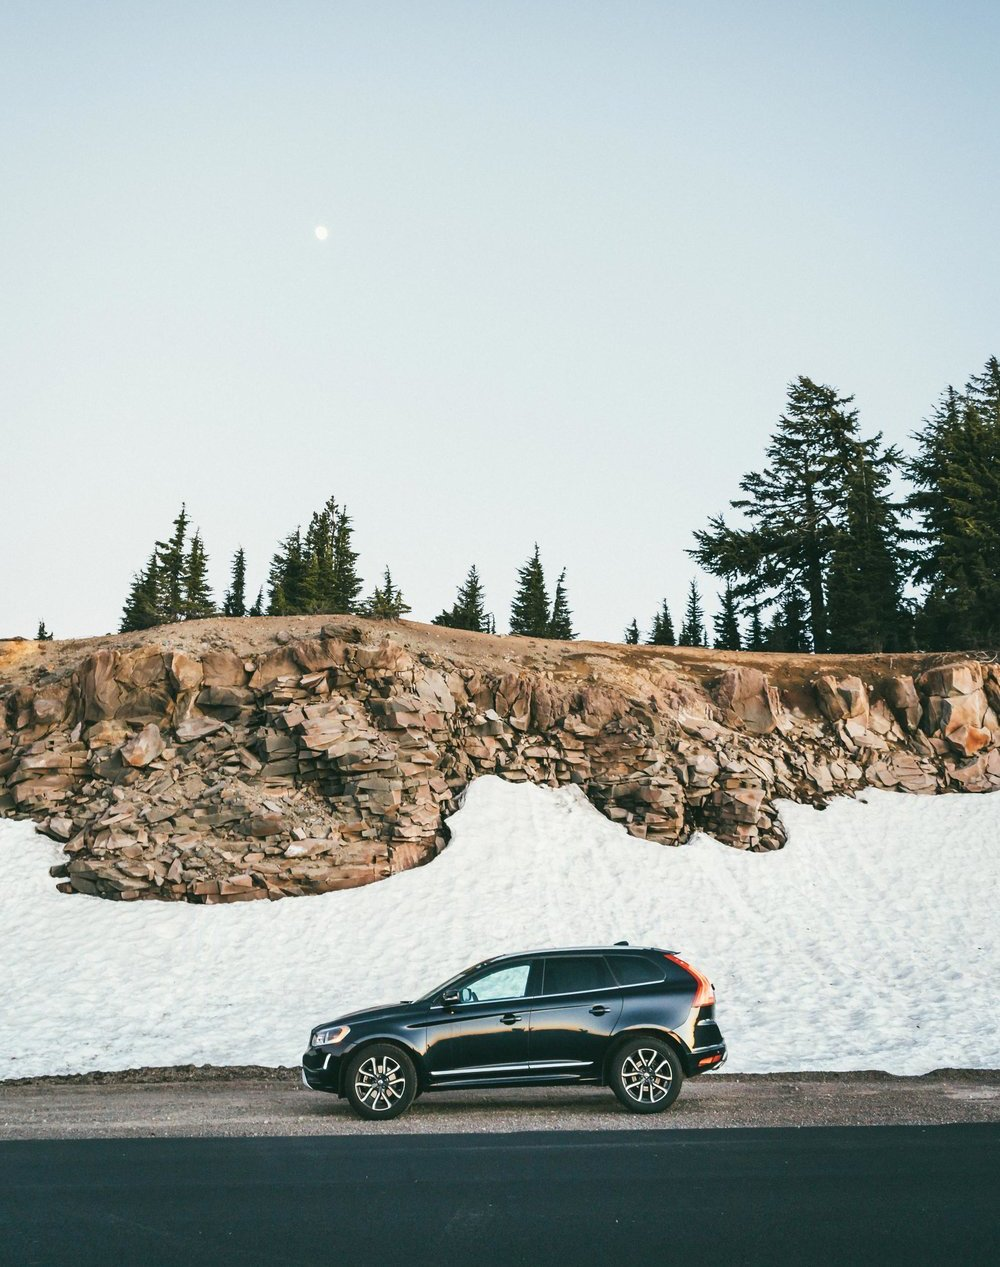 Cristofer_Jeschke_CraterLake_Volvo-(1-of-13).jpg